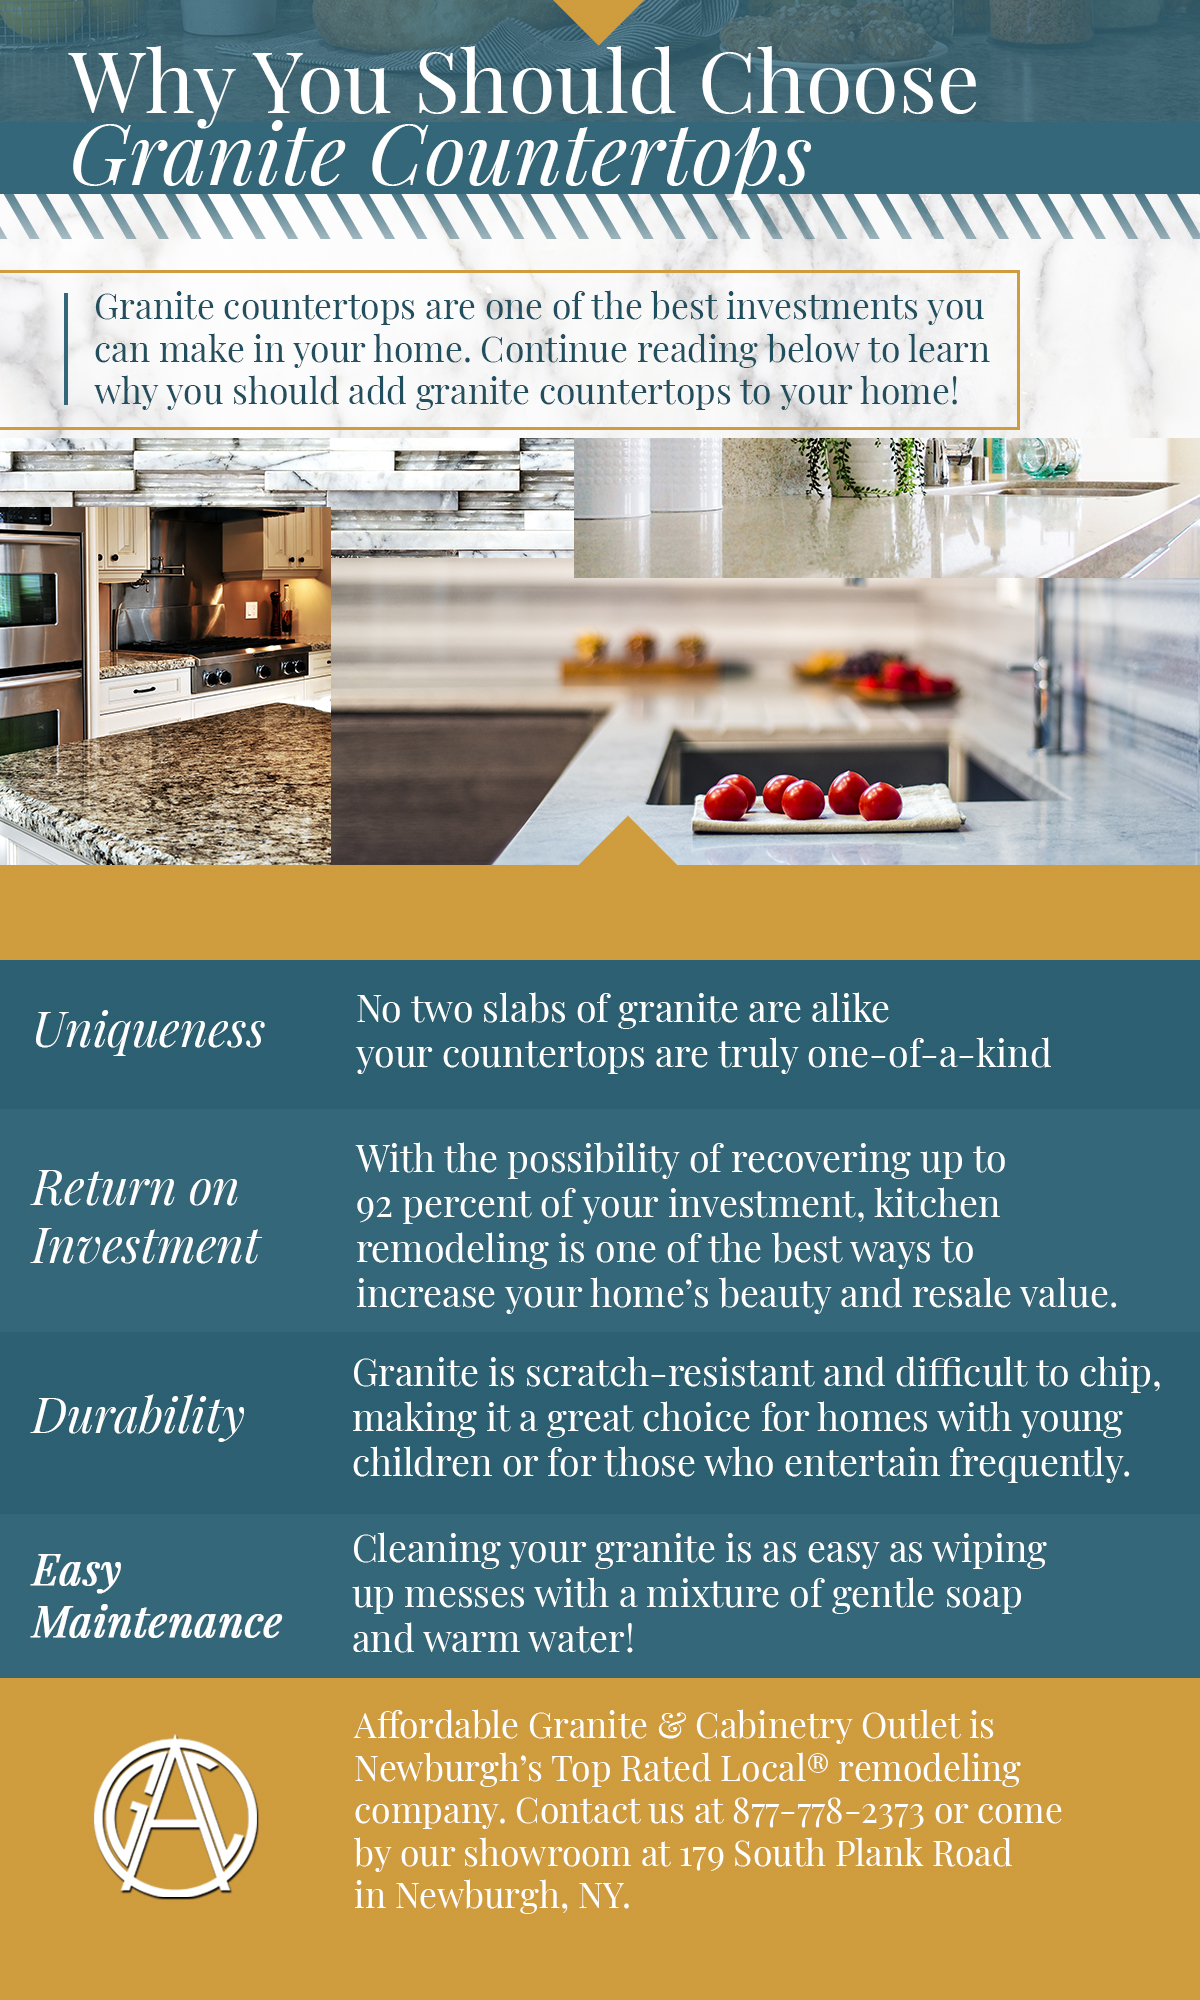 Kitchen Remodeling Newburgh: Why You Should Choose Granite Countertops